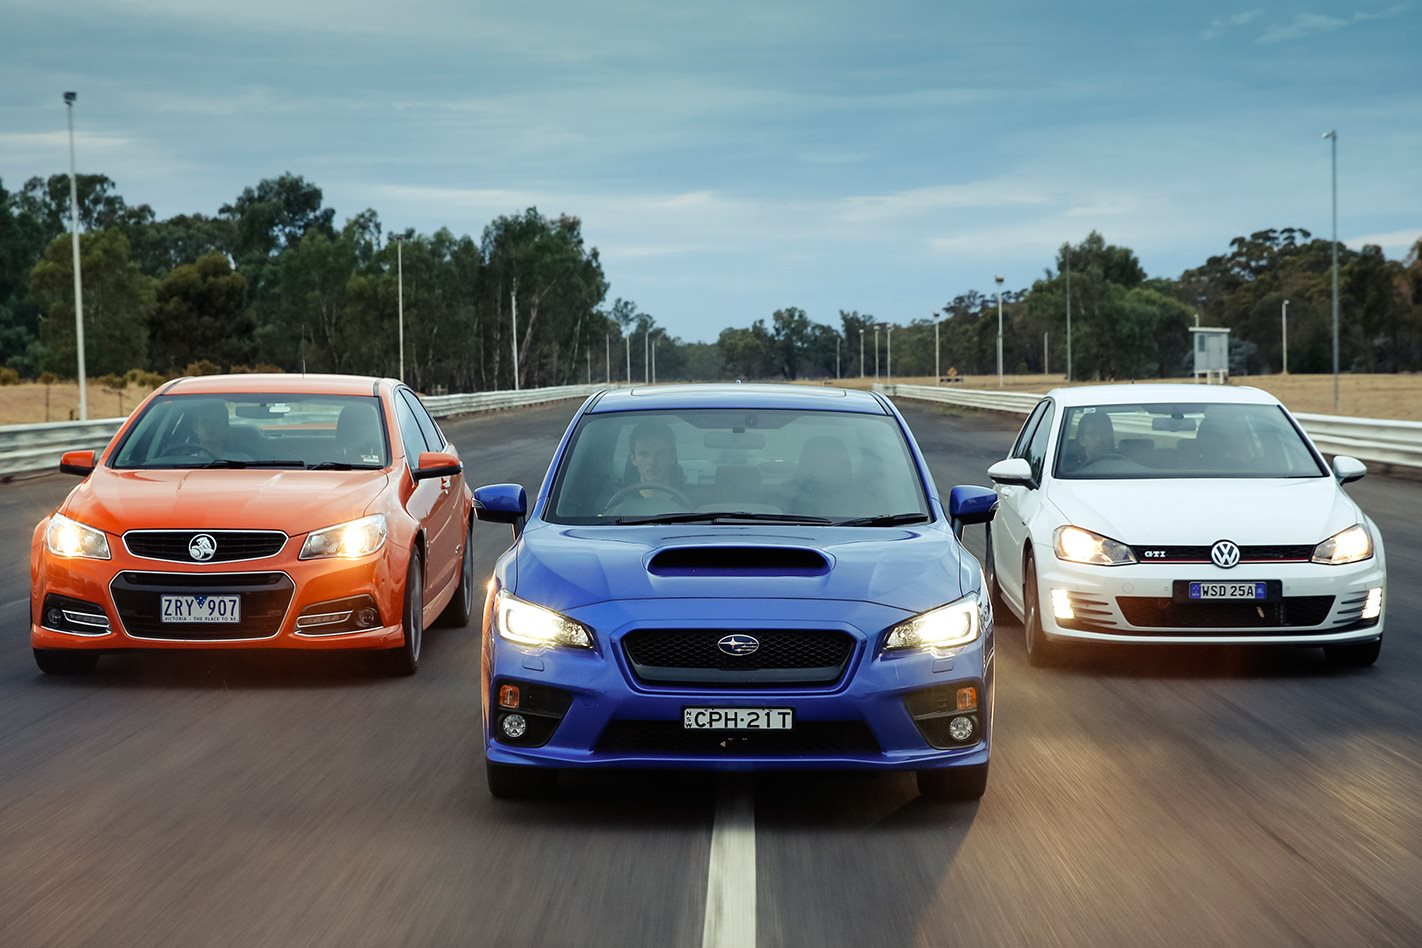 Wrx Vs Gti >> Wrx Vs Commodore Ss V Vs Golf Gti